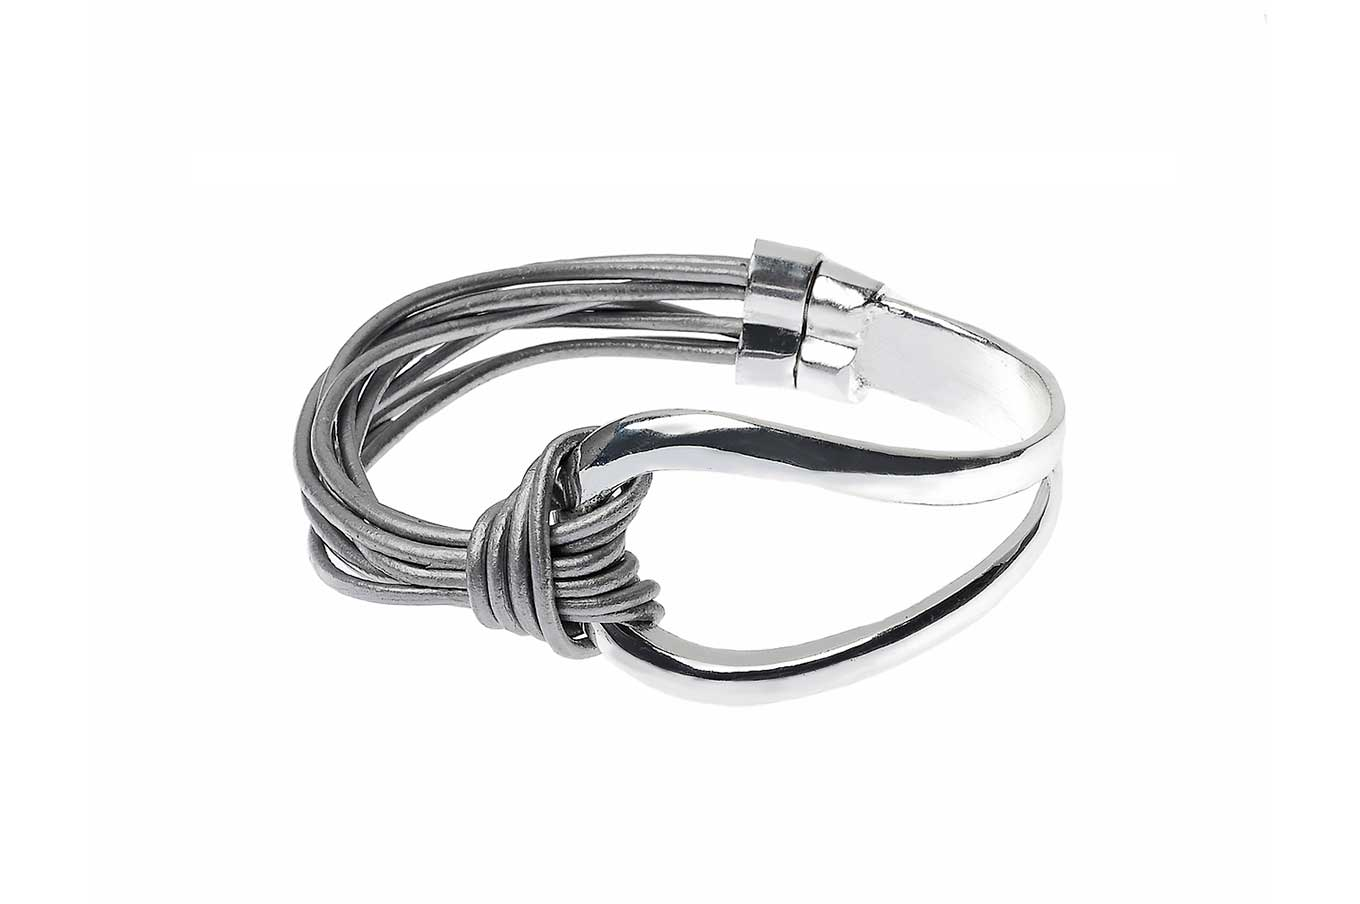 Grey multi-cord Magnetic Bracelet with Silver Buckle